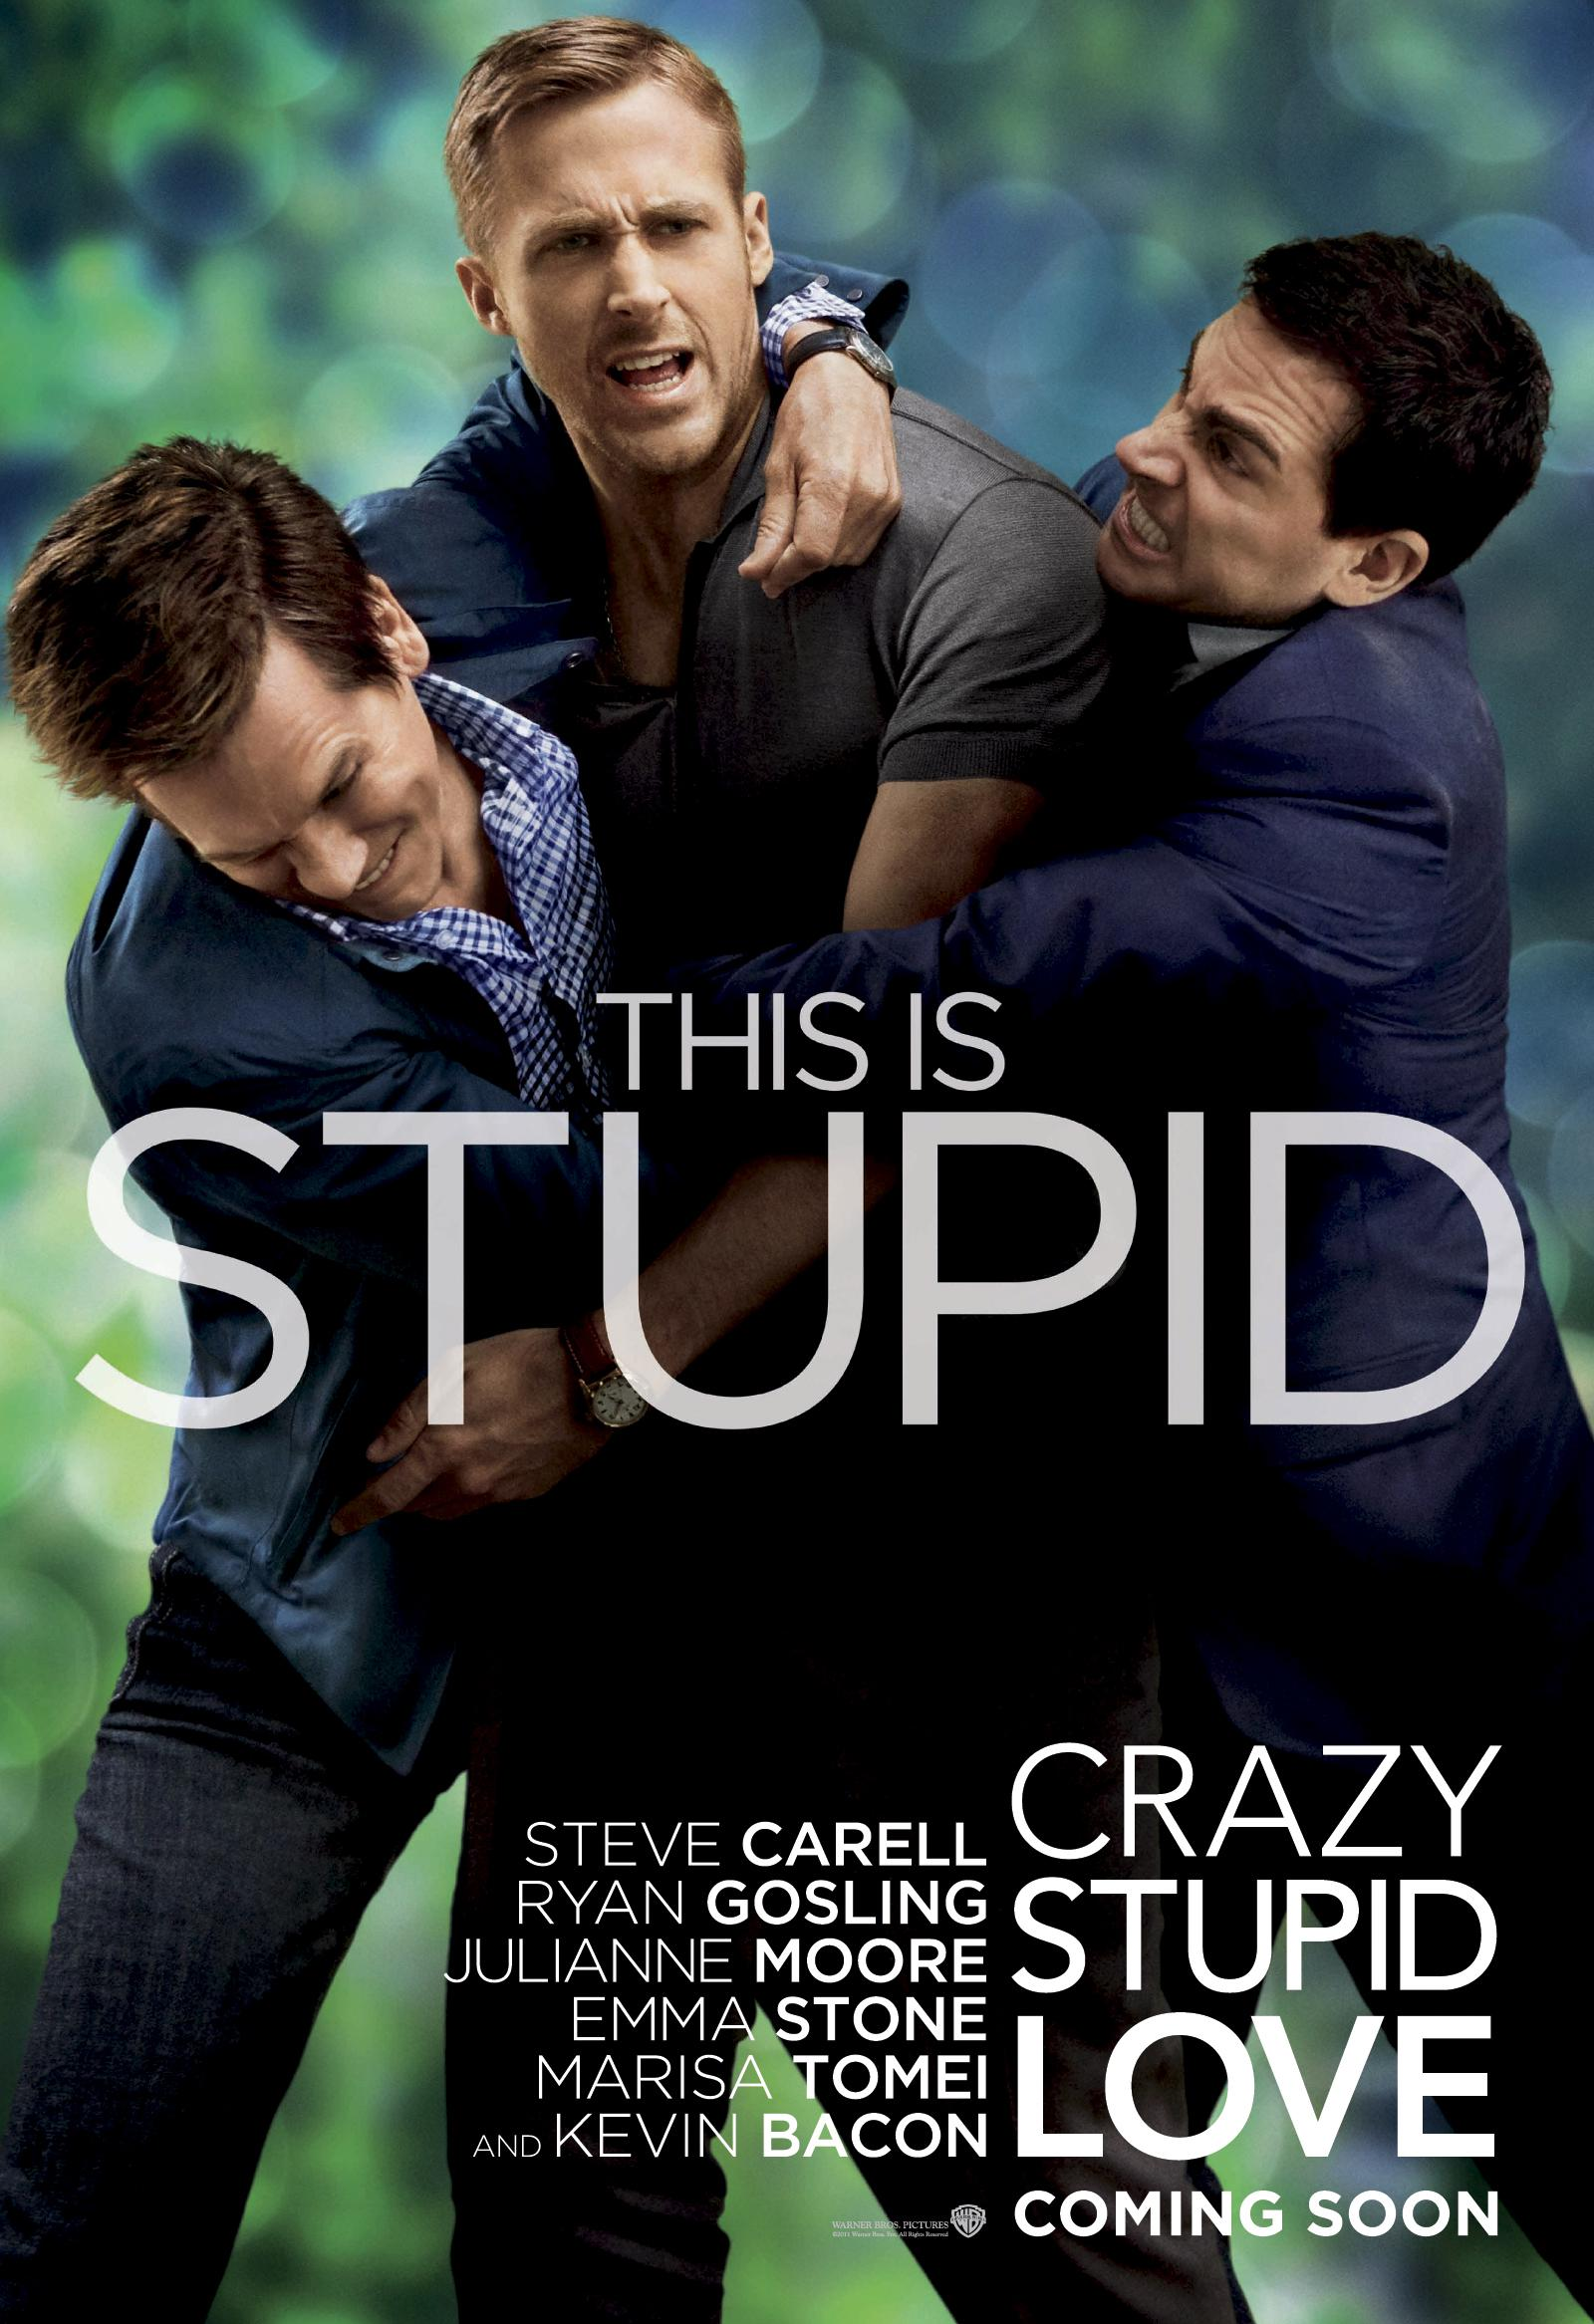 Crazy, Stupid, Love - this is Stupid